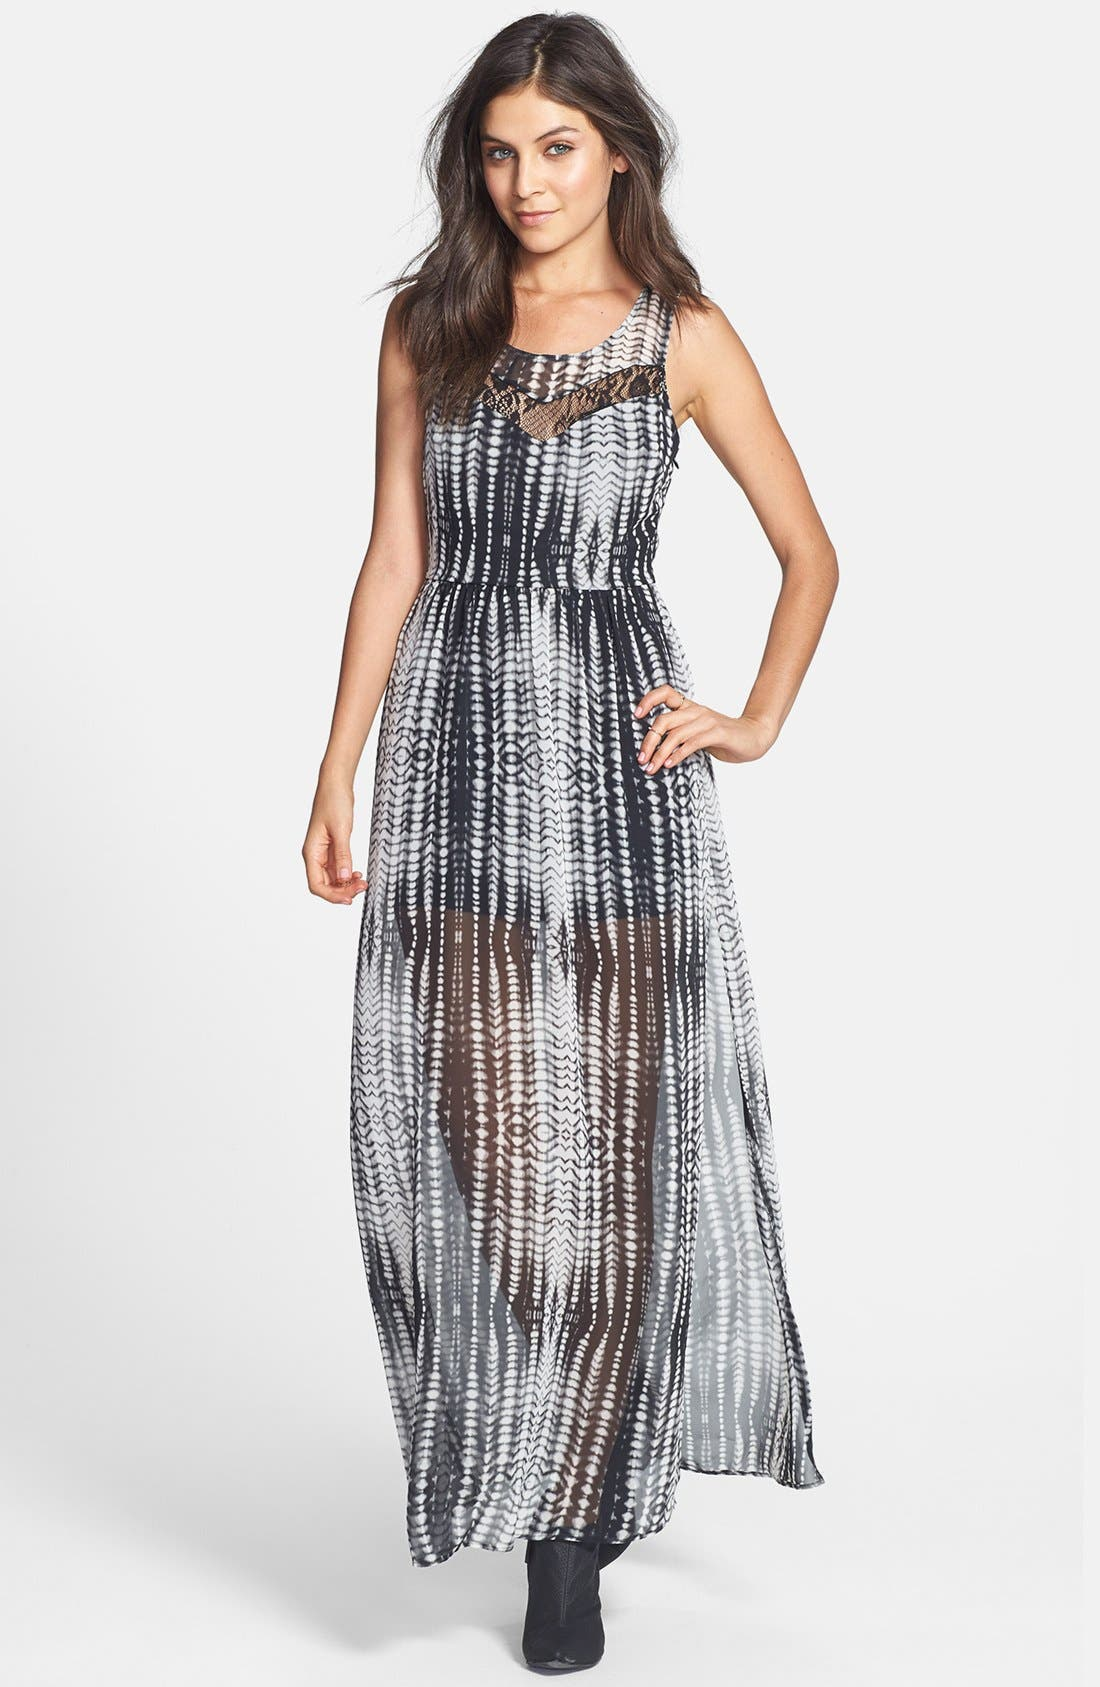 Alternate Image 1 Selected - Lace Inset Print Maxi Dress